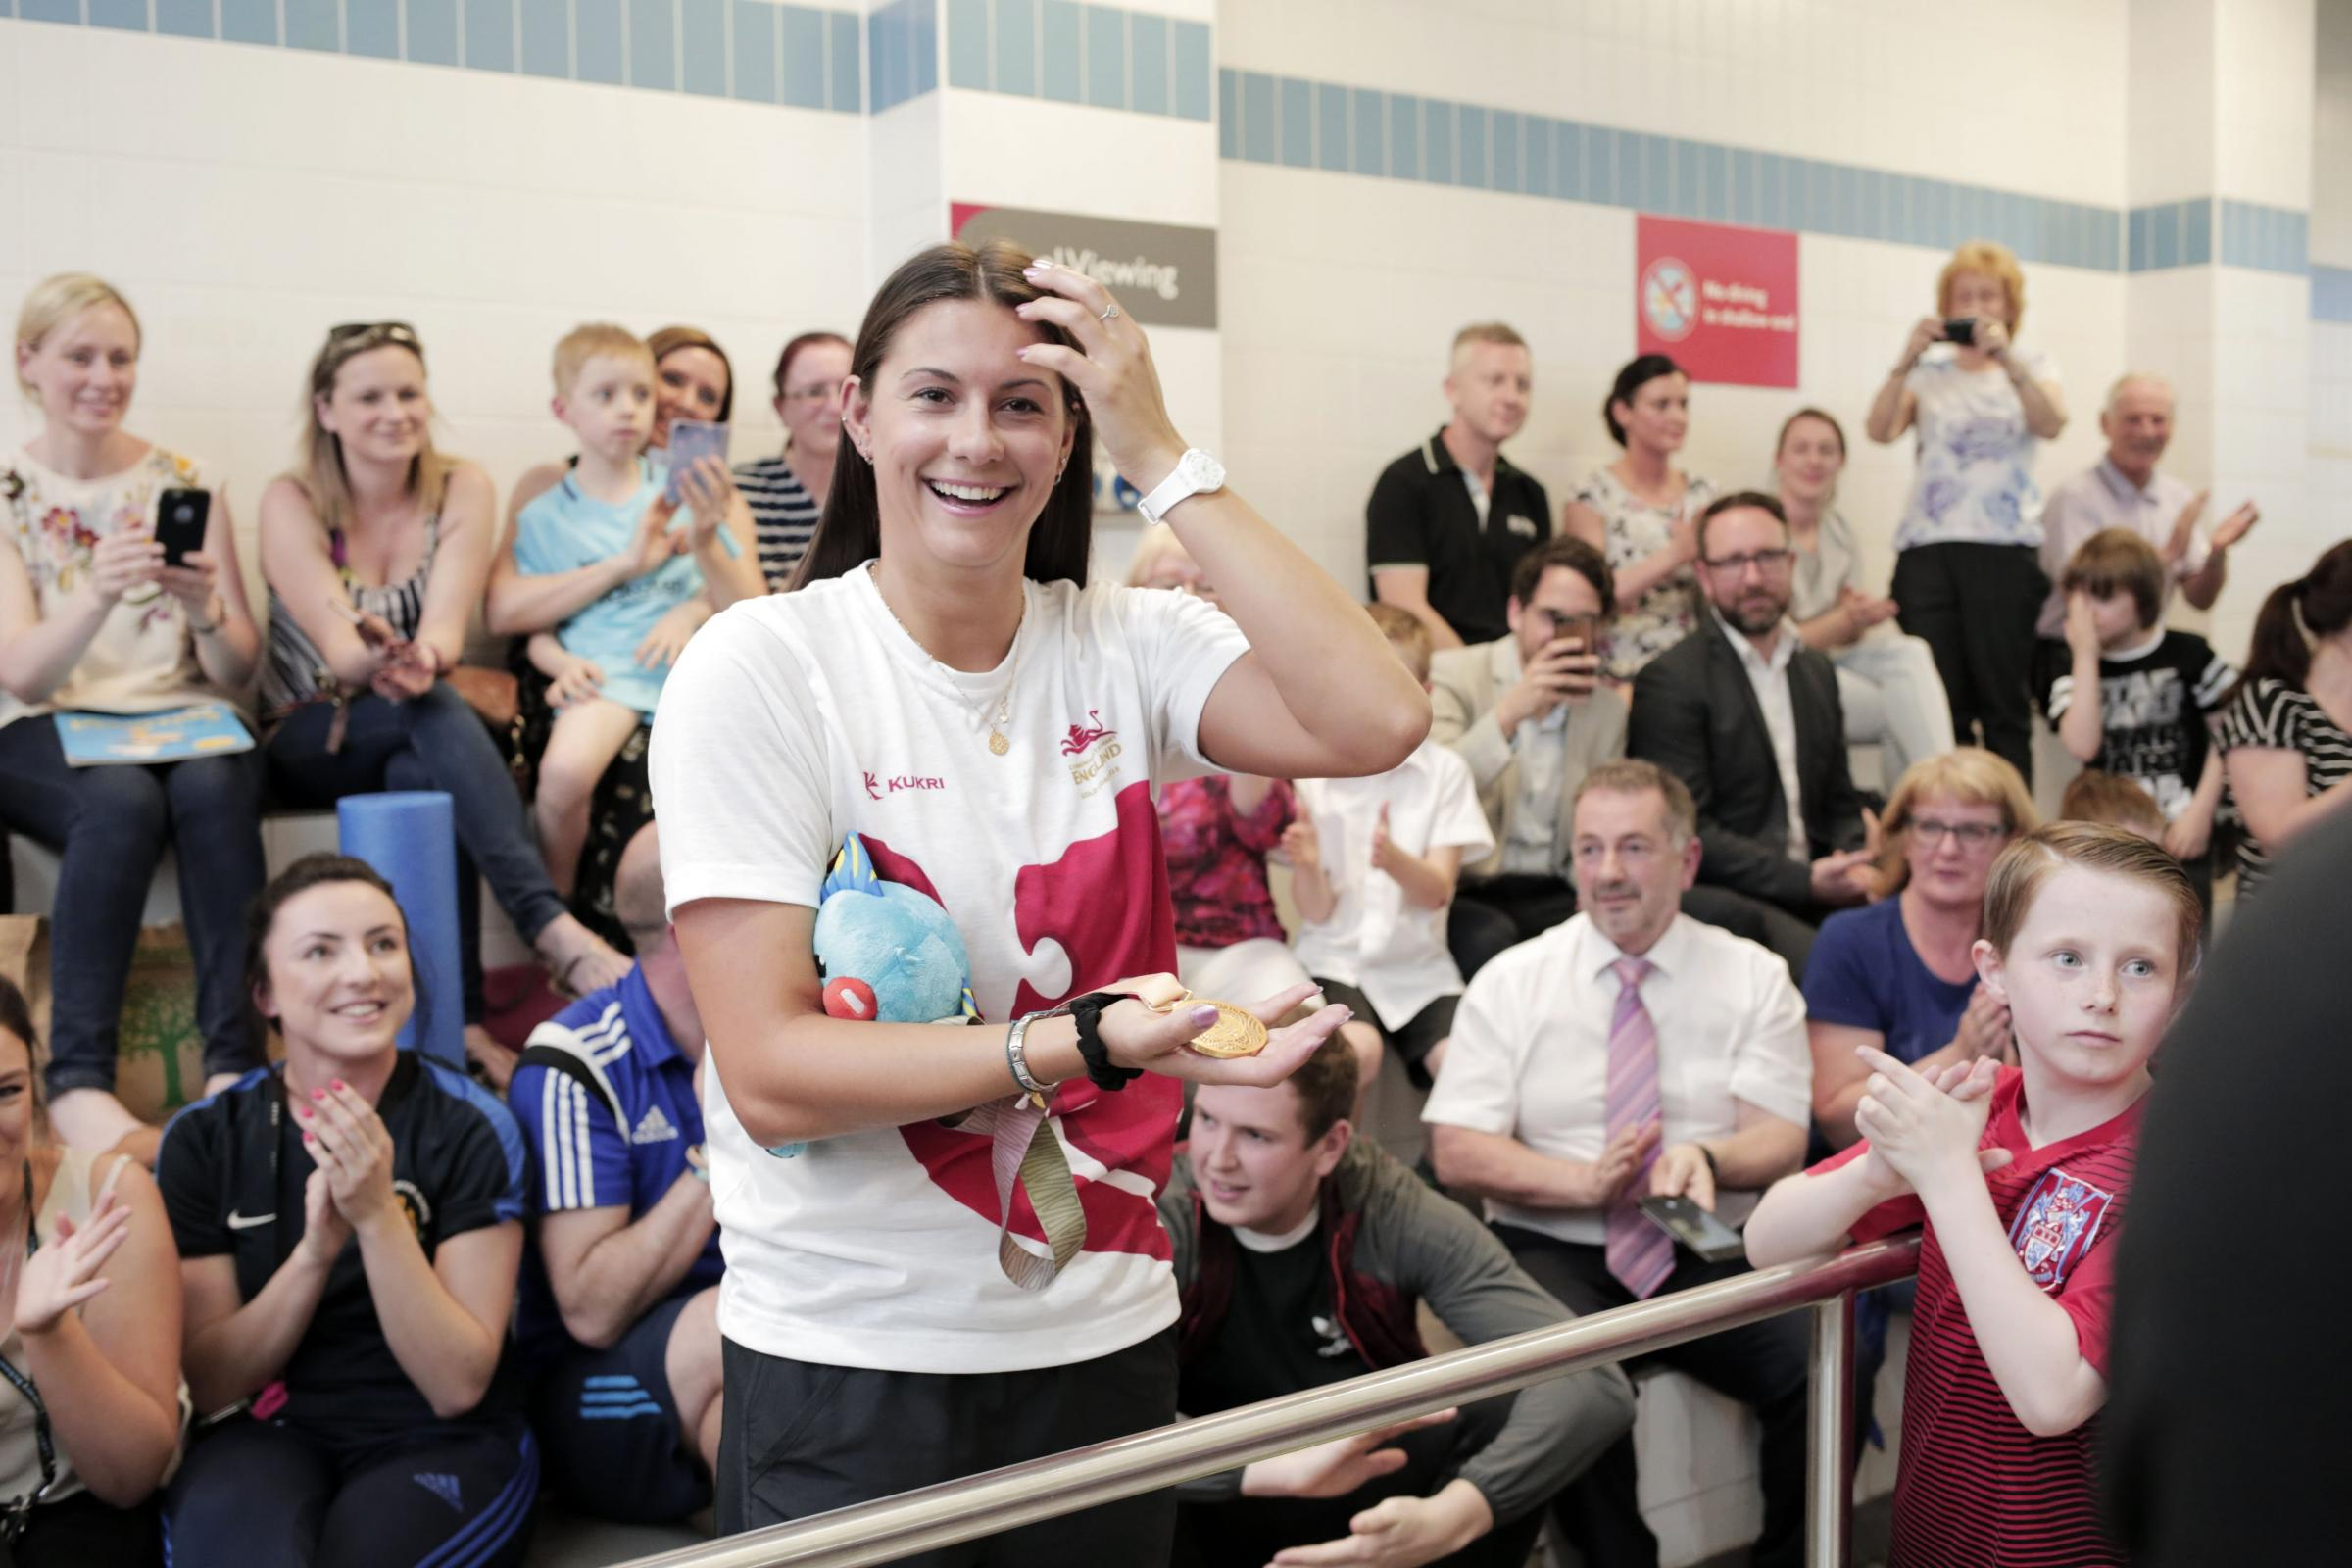 Commonwealth gold medallist Aimee Willmott is greeted by friends on her arrival at the Neptune Leisure Centre in Middlesbrough. Photograph: Stuart Boulton.